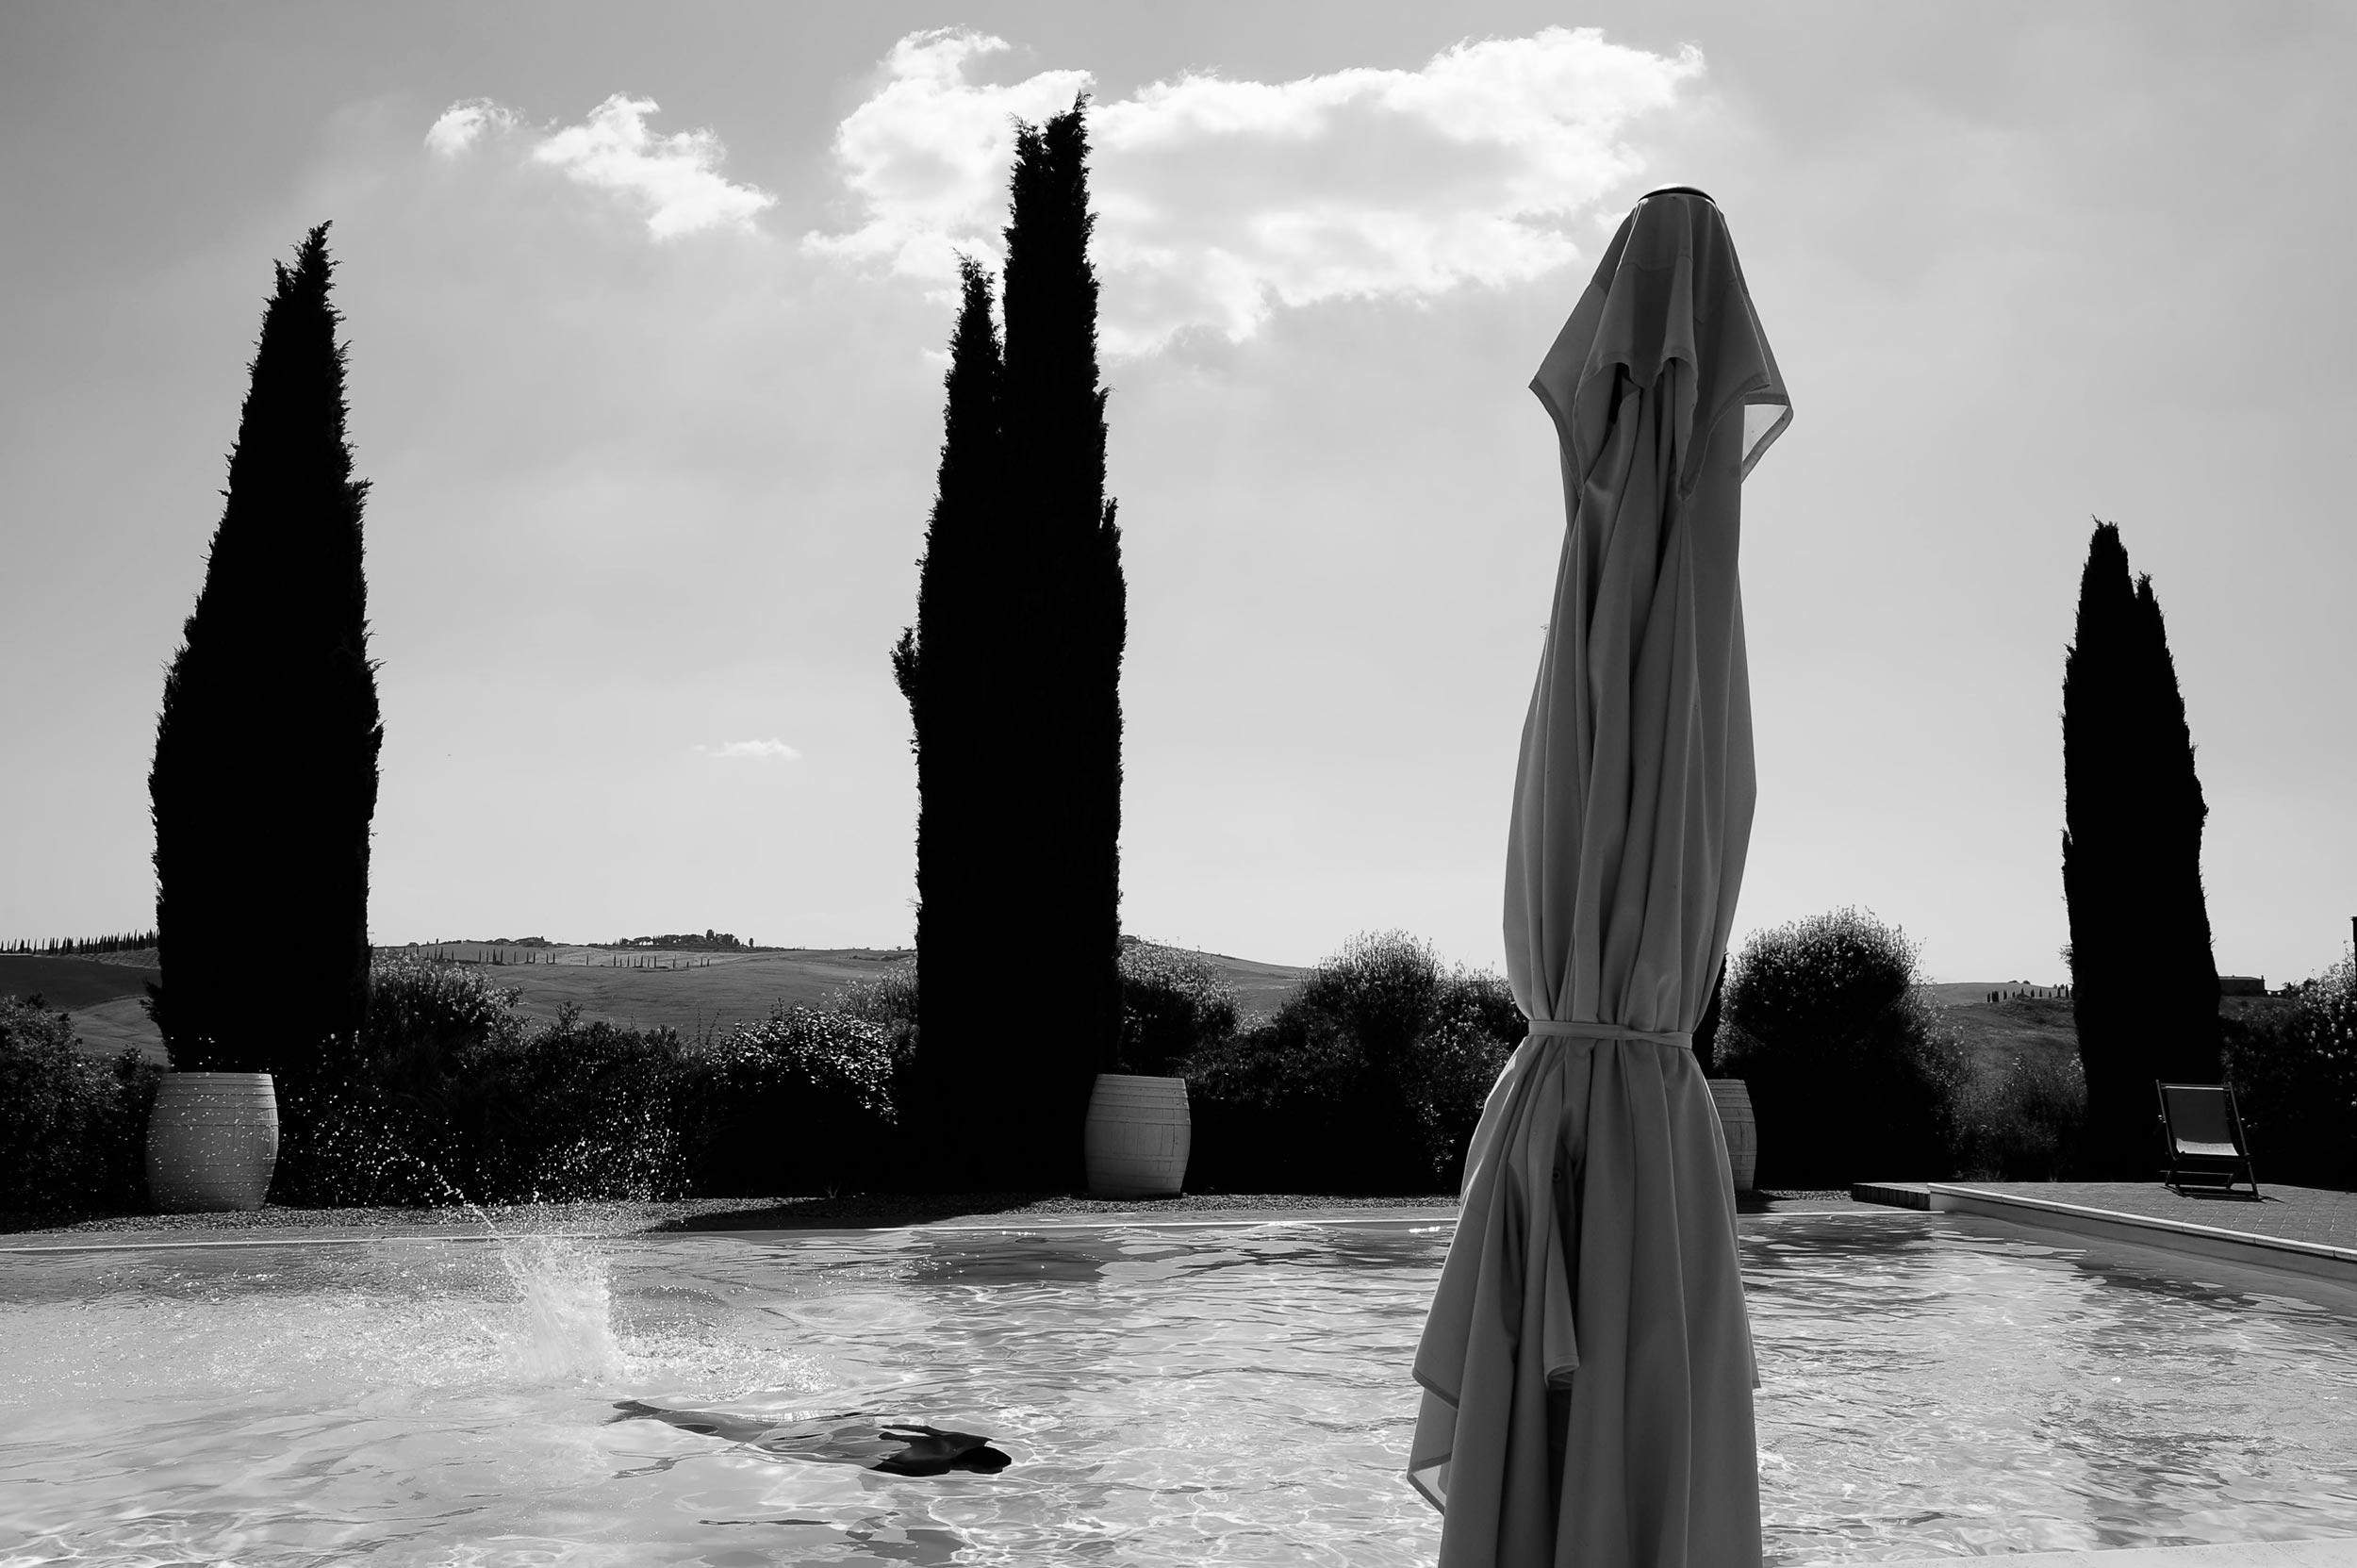 Cypresses with Black Man in the Swimming Pool in Tuscany Wedding Photographer Alessandro Avenali 2019